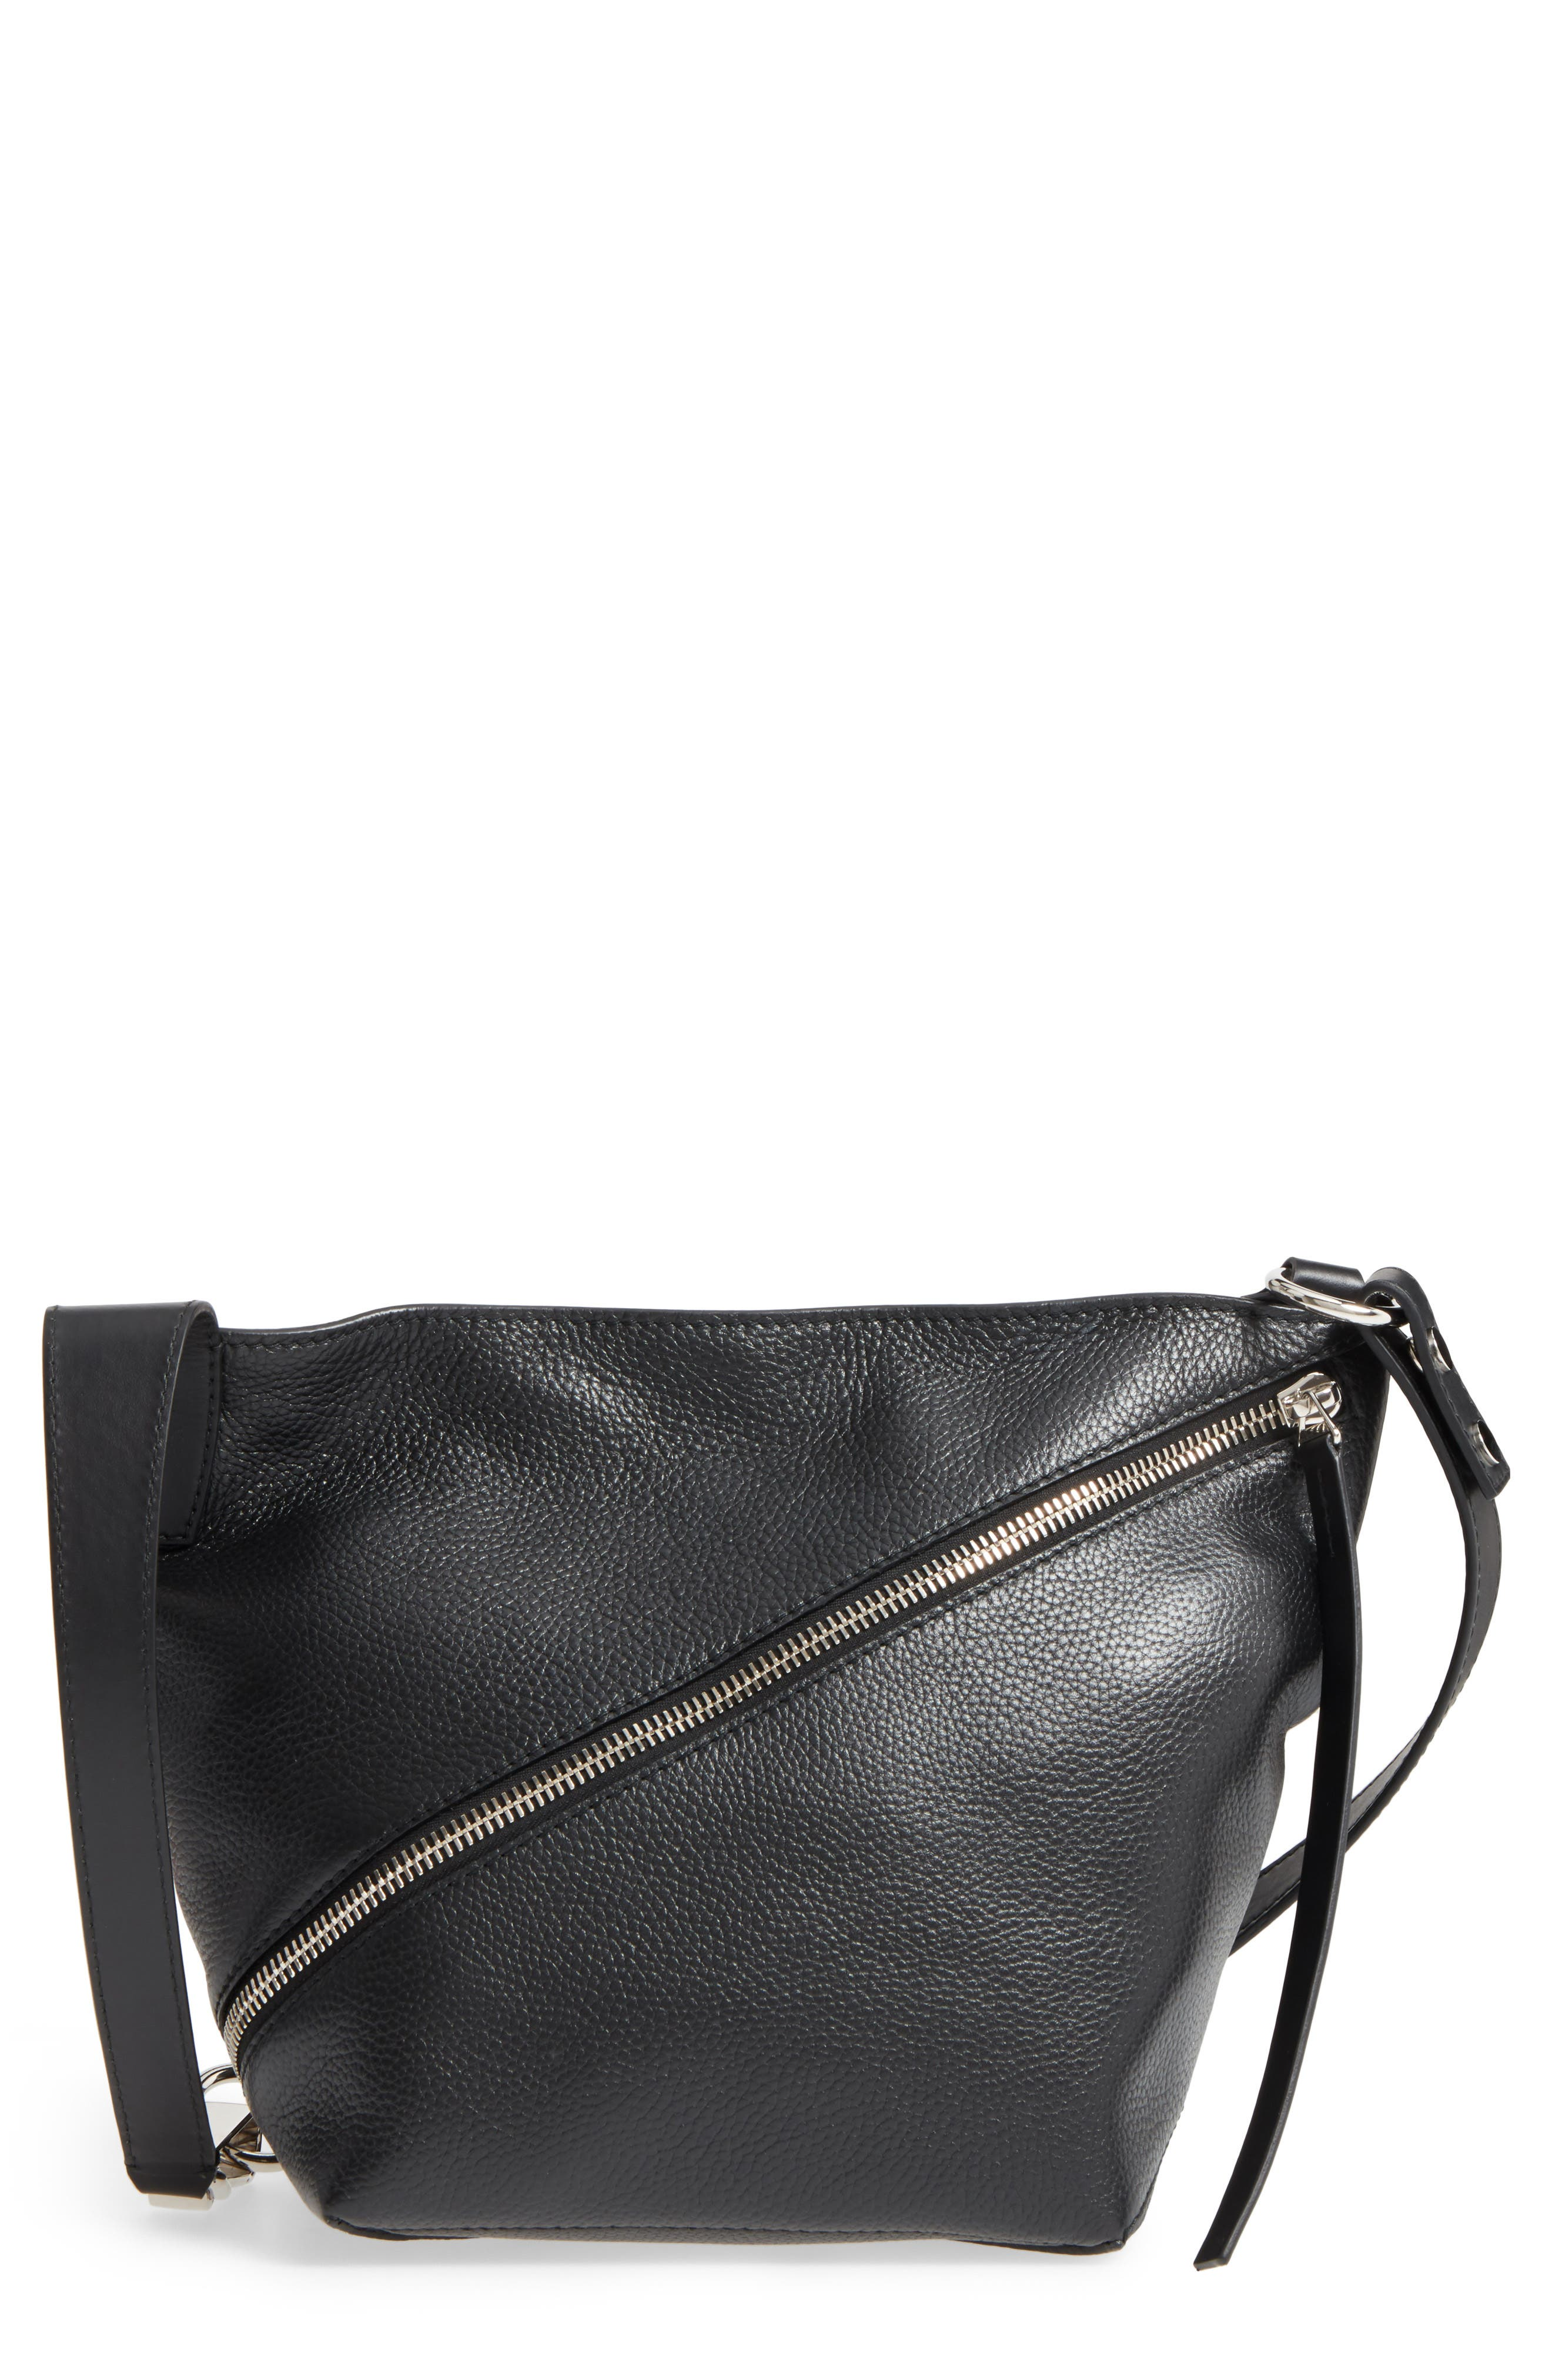 Main Image - Proenza Schouler Small Leather Hobo Bag